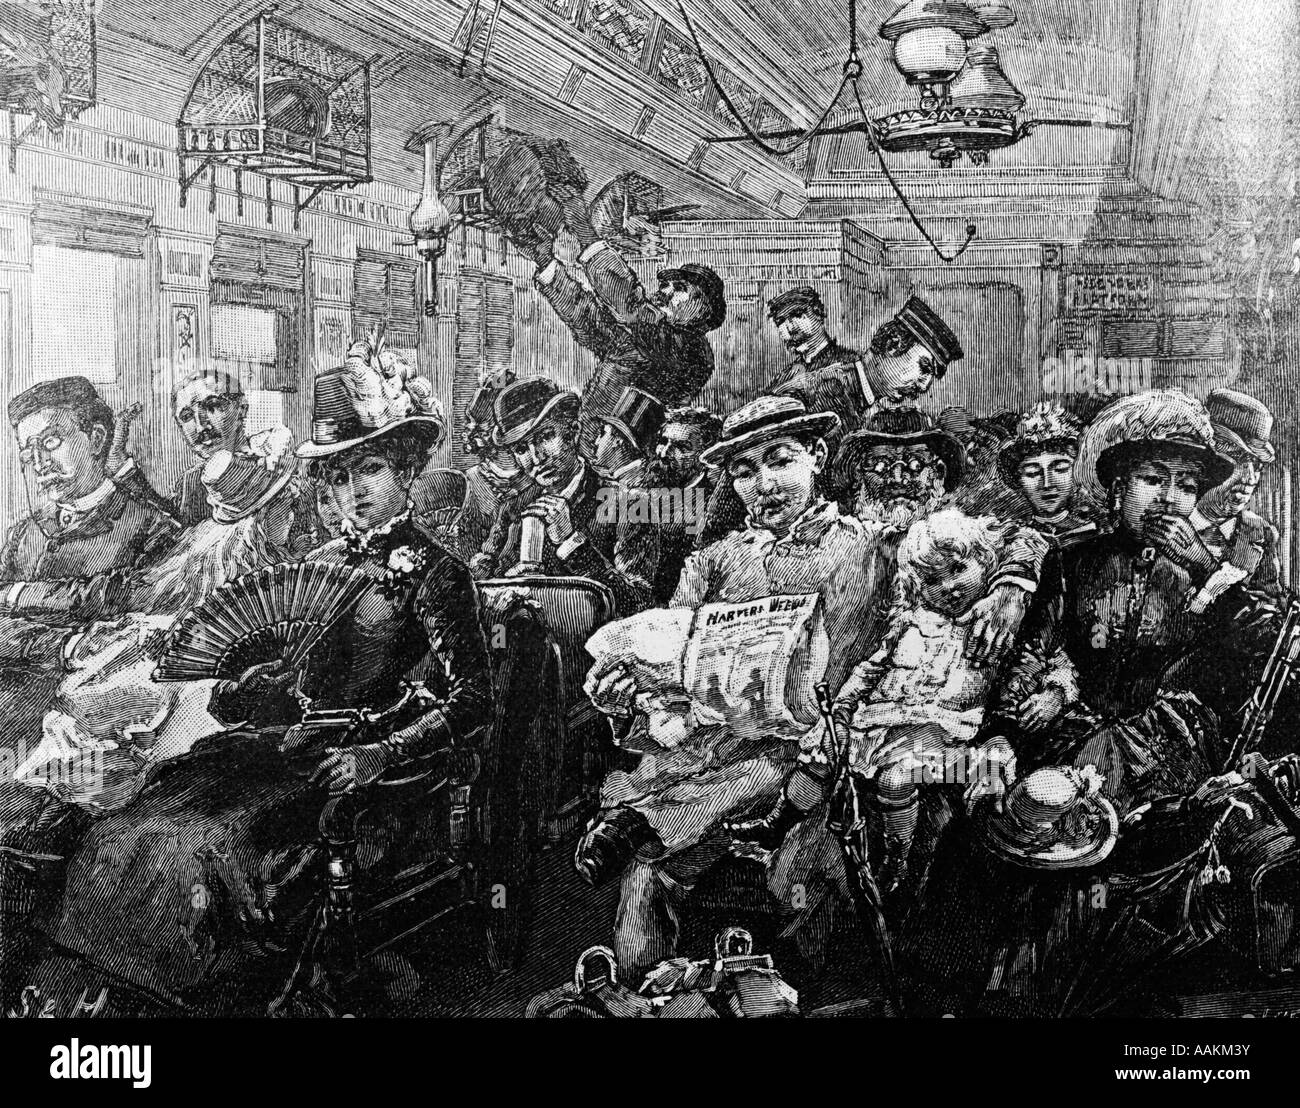 1880s ILLUSTRATION CROWDED PASSENGER CAR 19TH CENTURY TRAIN FROM HARPERS MAGAZINE AUGUST 1885 - Stock Image